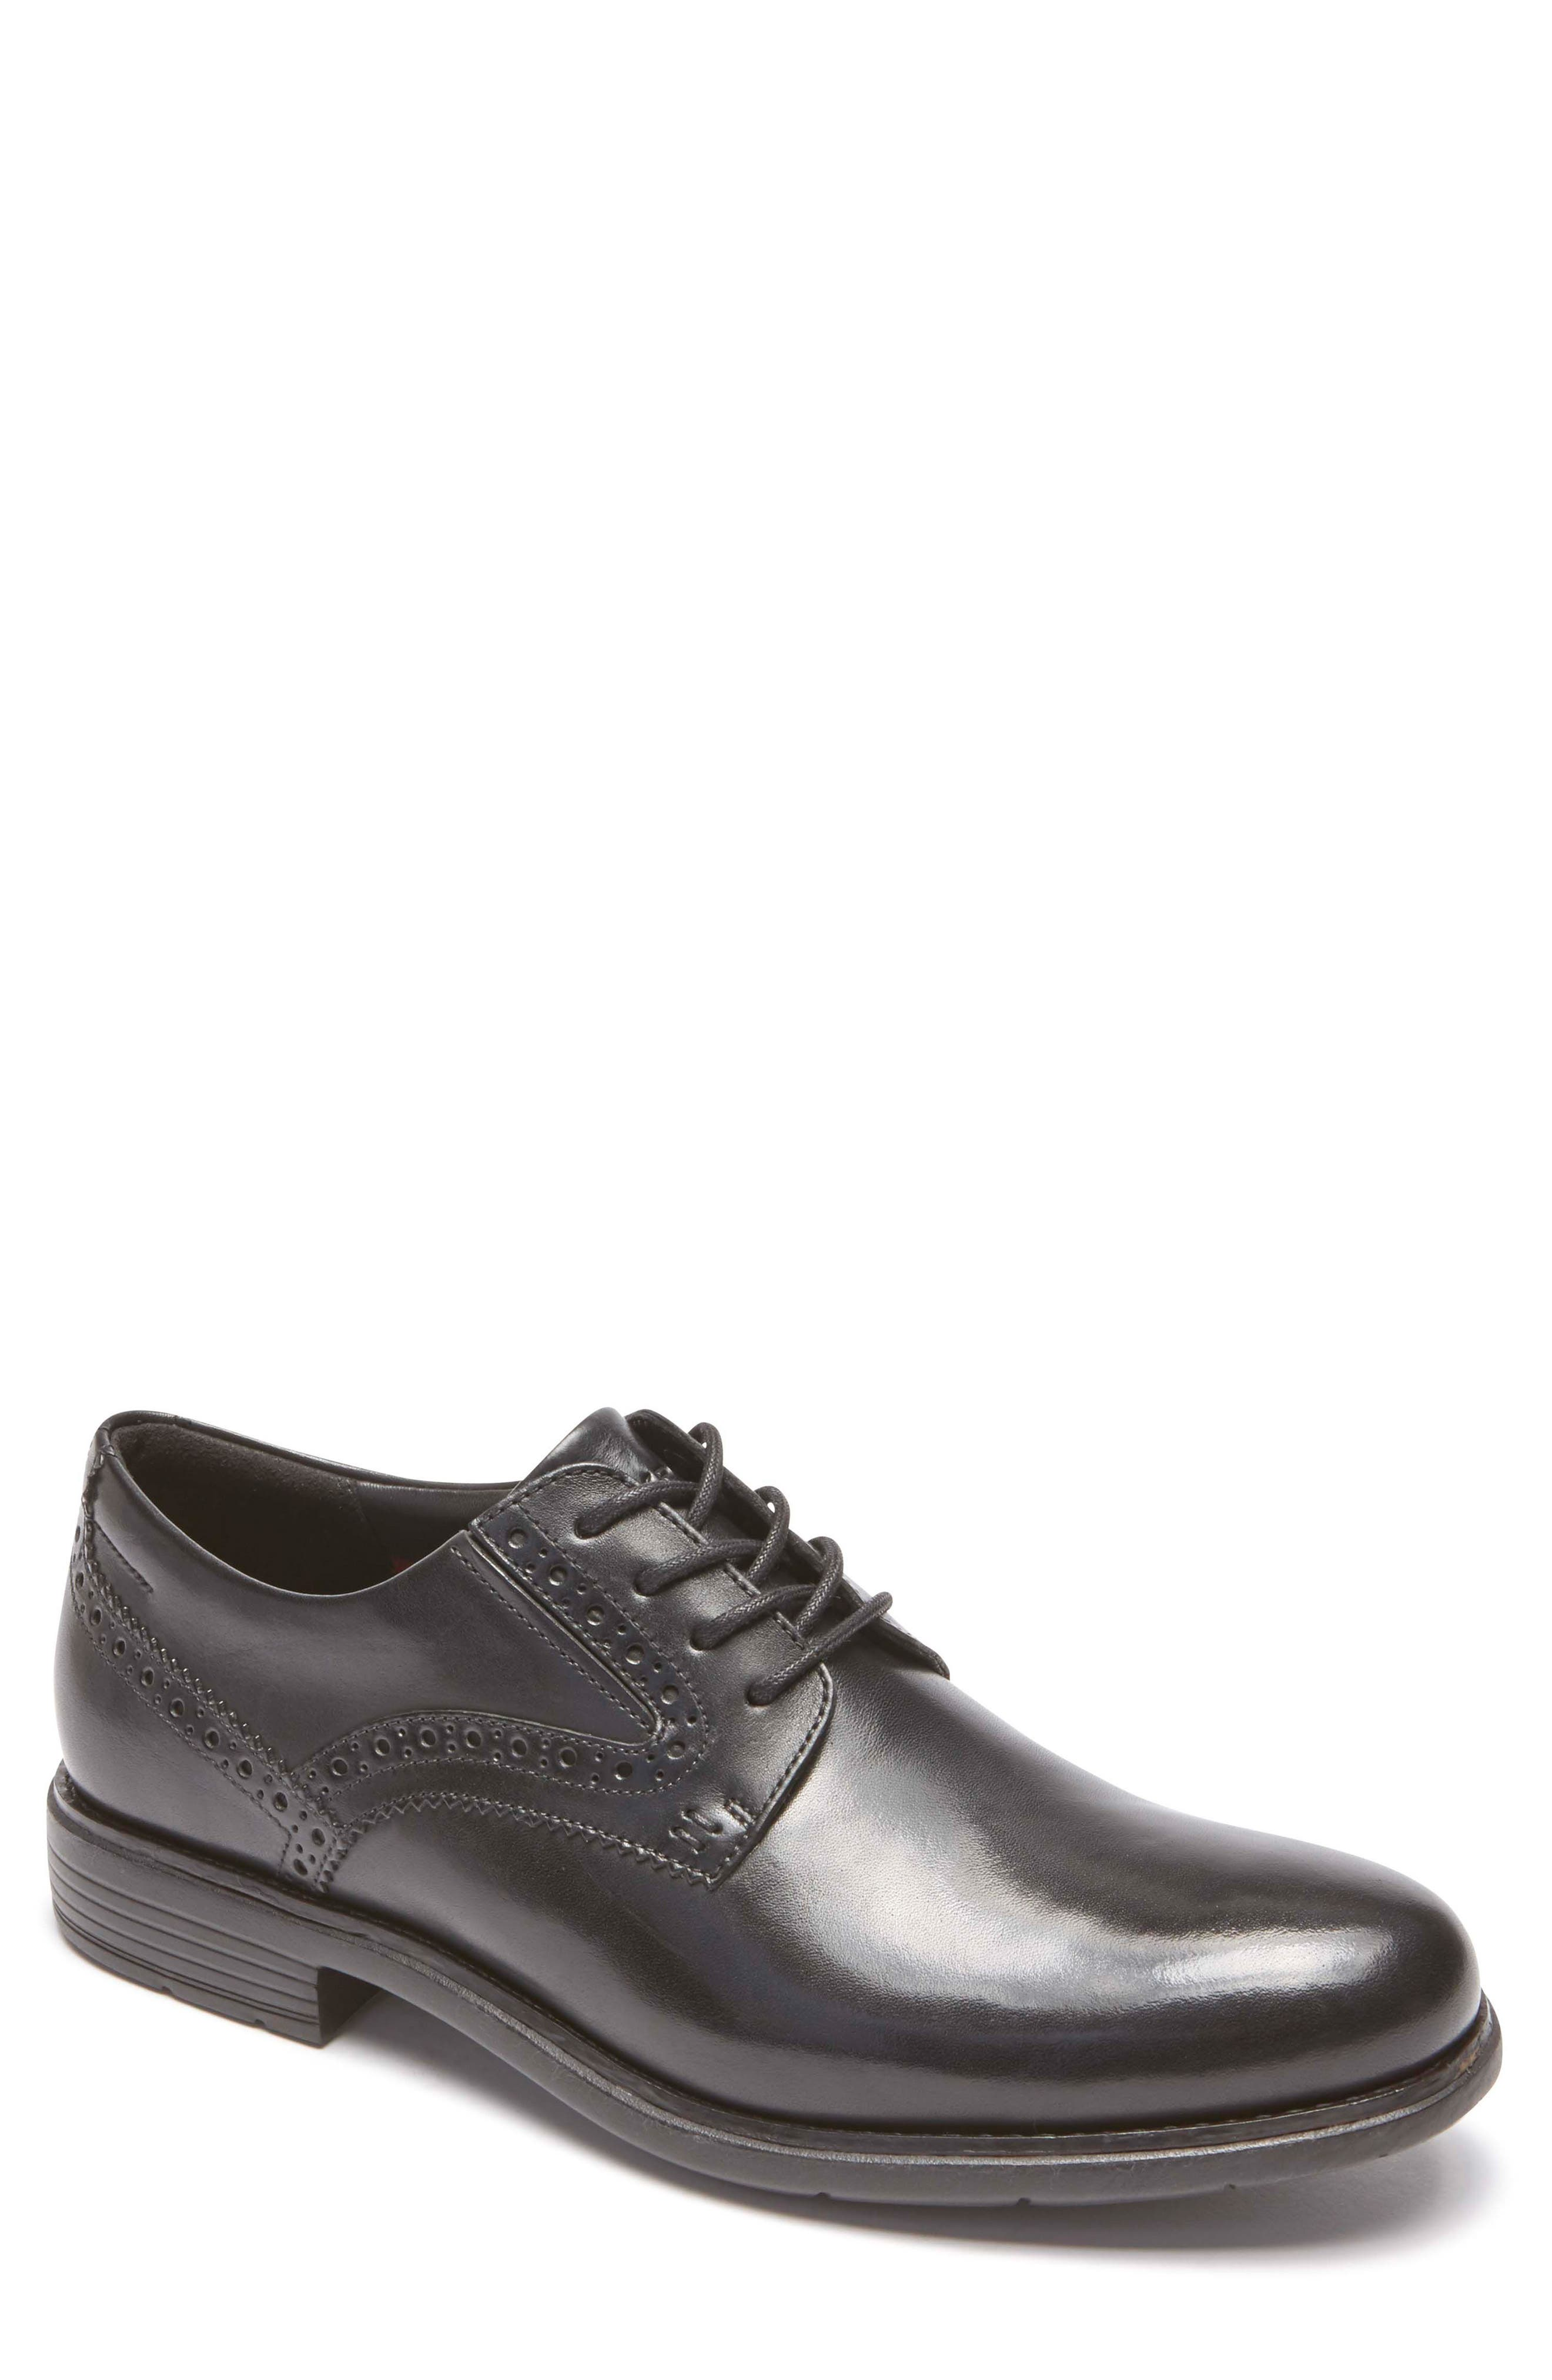 Total Motion Classic Dress Plain Toe Derby,                             Main thumbnail 1, color,                             Black Leather